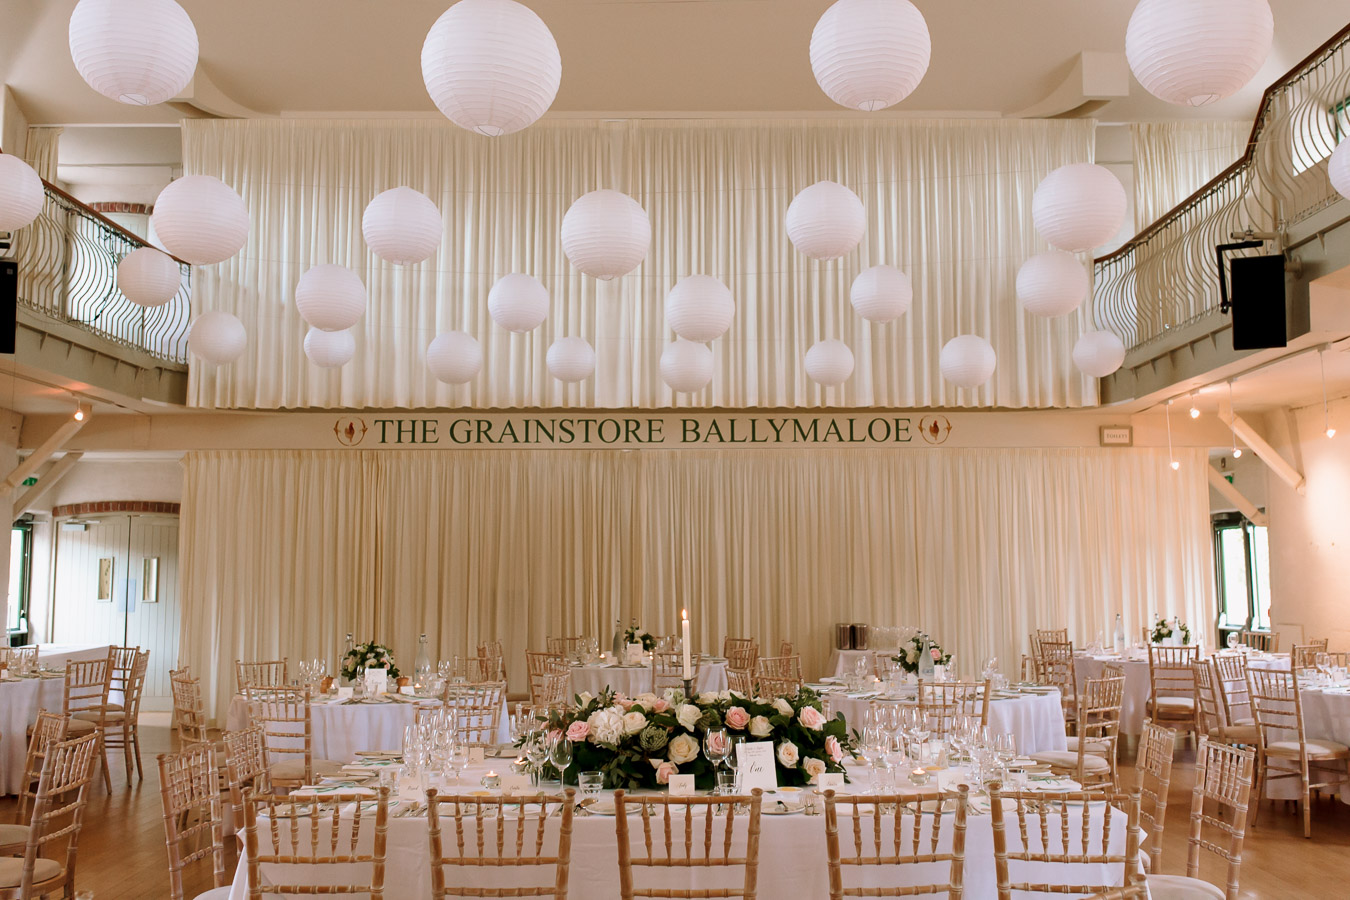 Grainstore Ballymaloe wedding